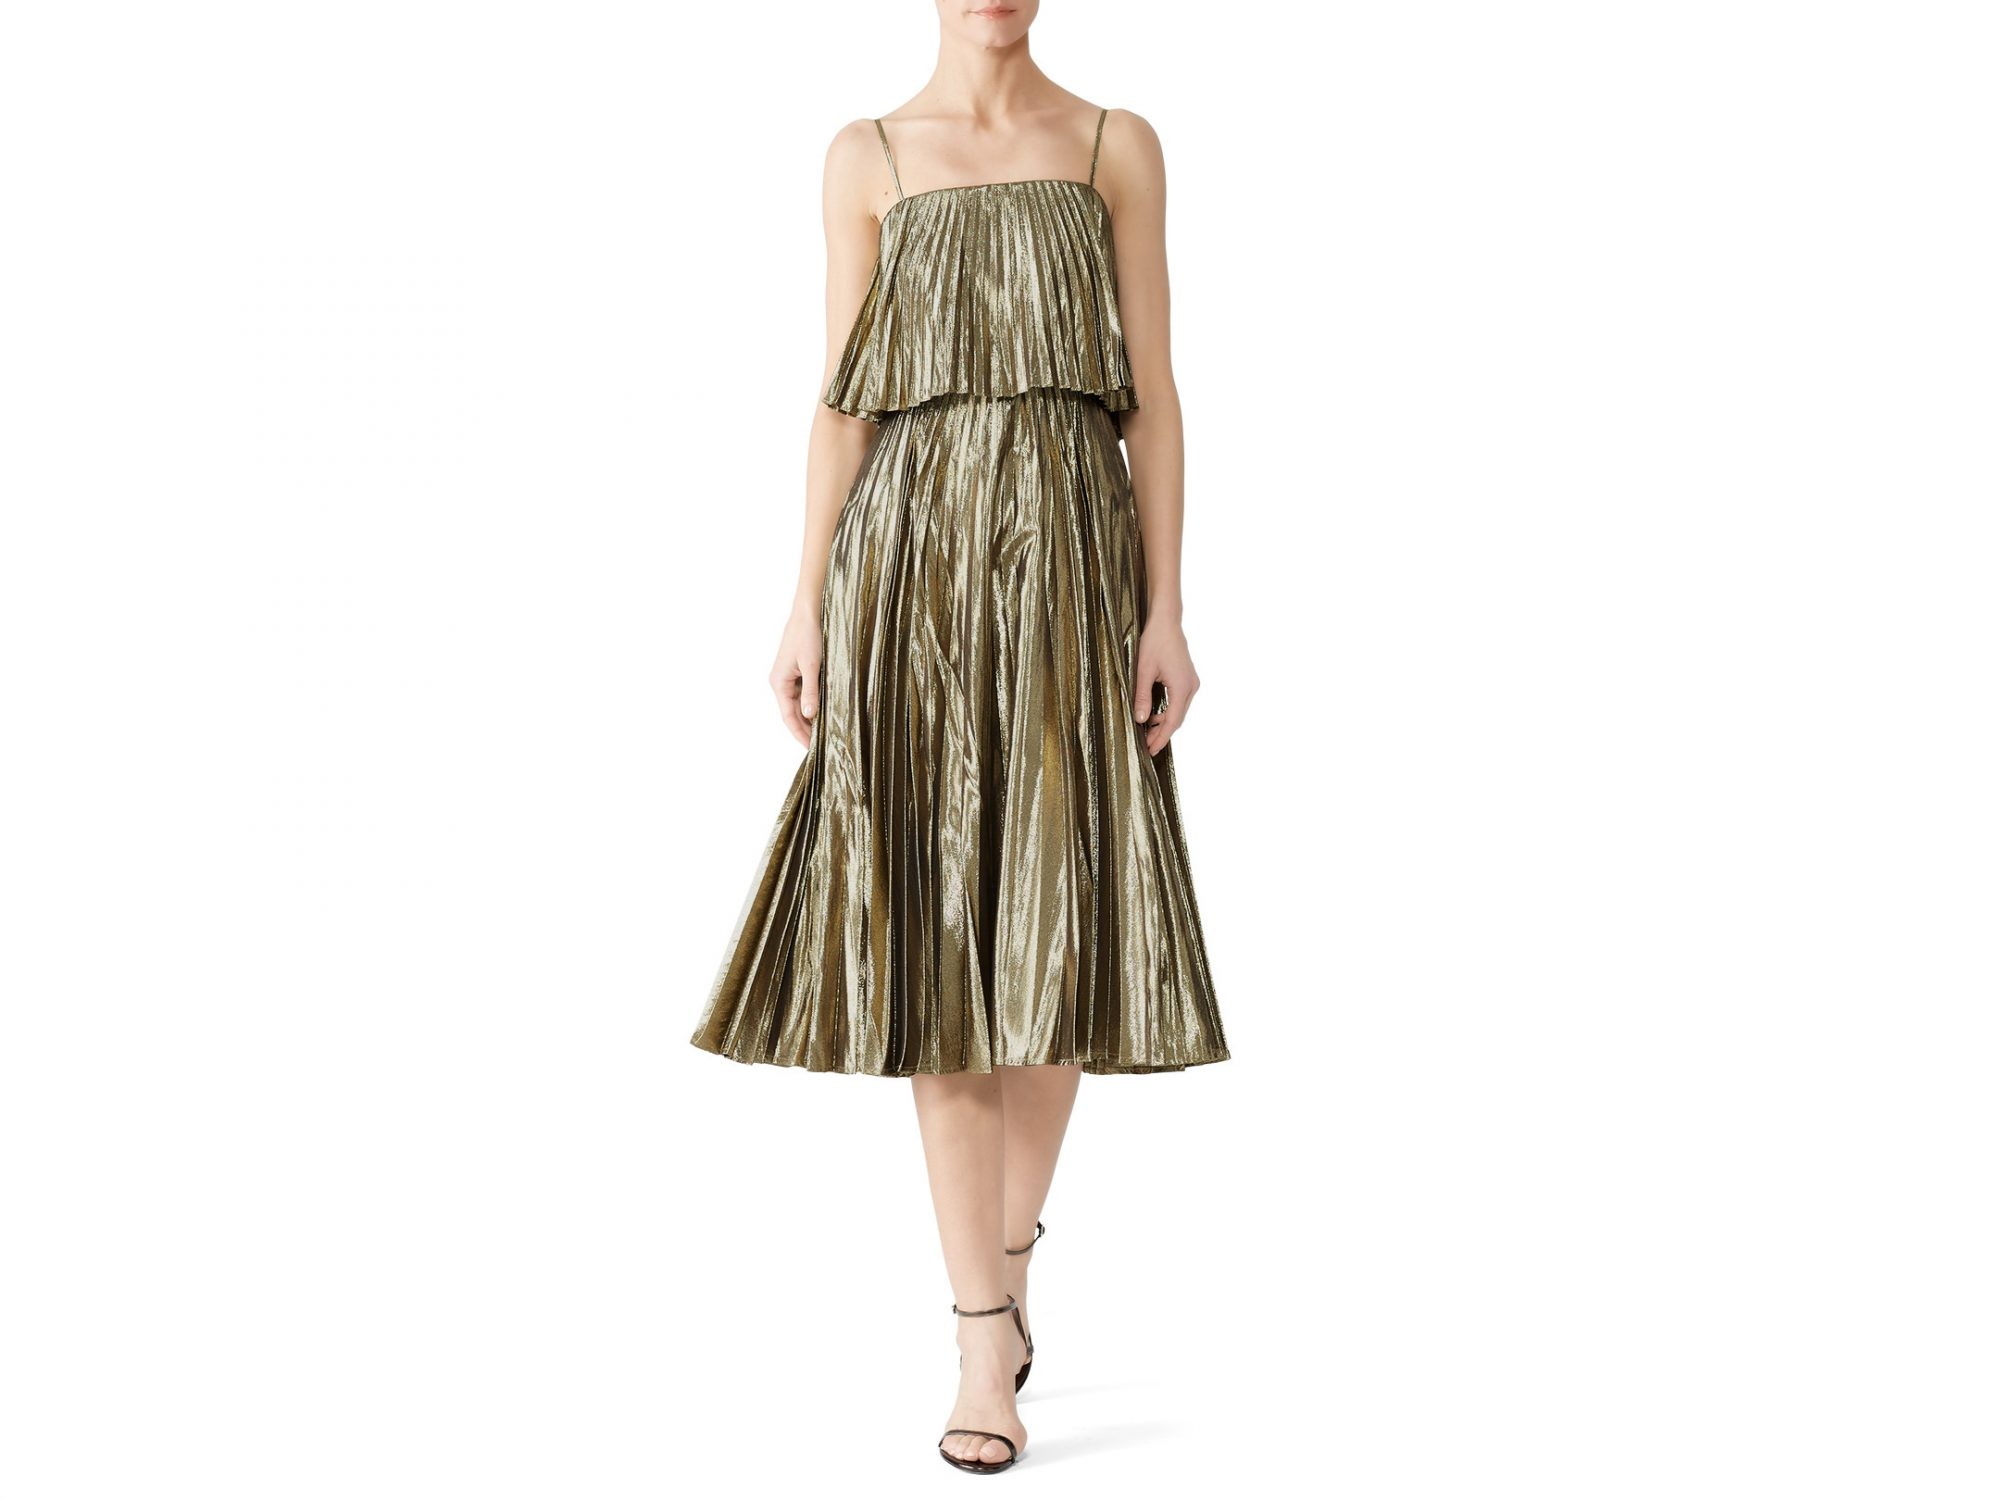 J. Crew Gold Goma Dress